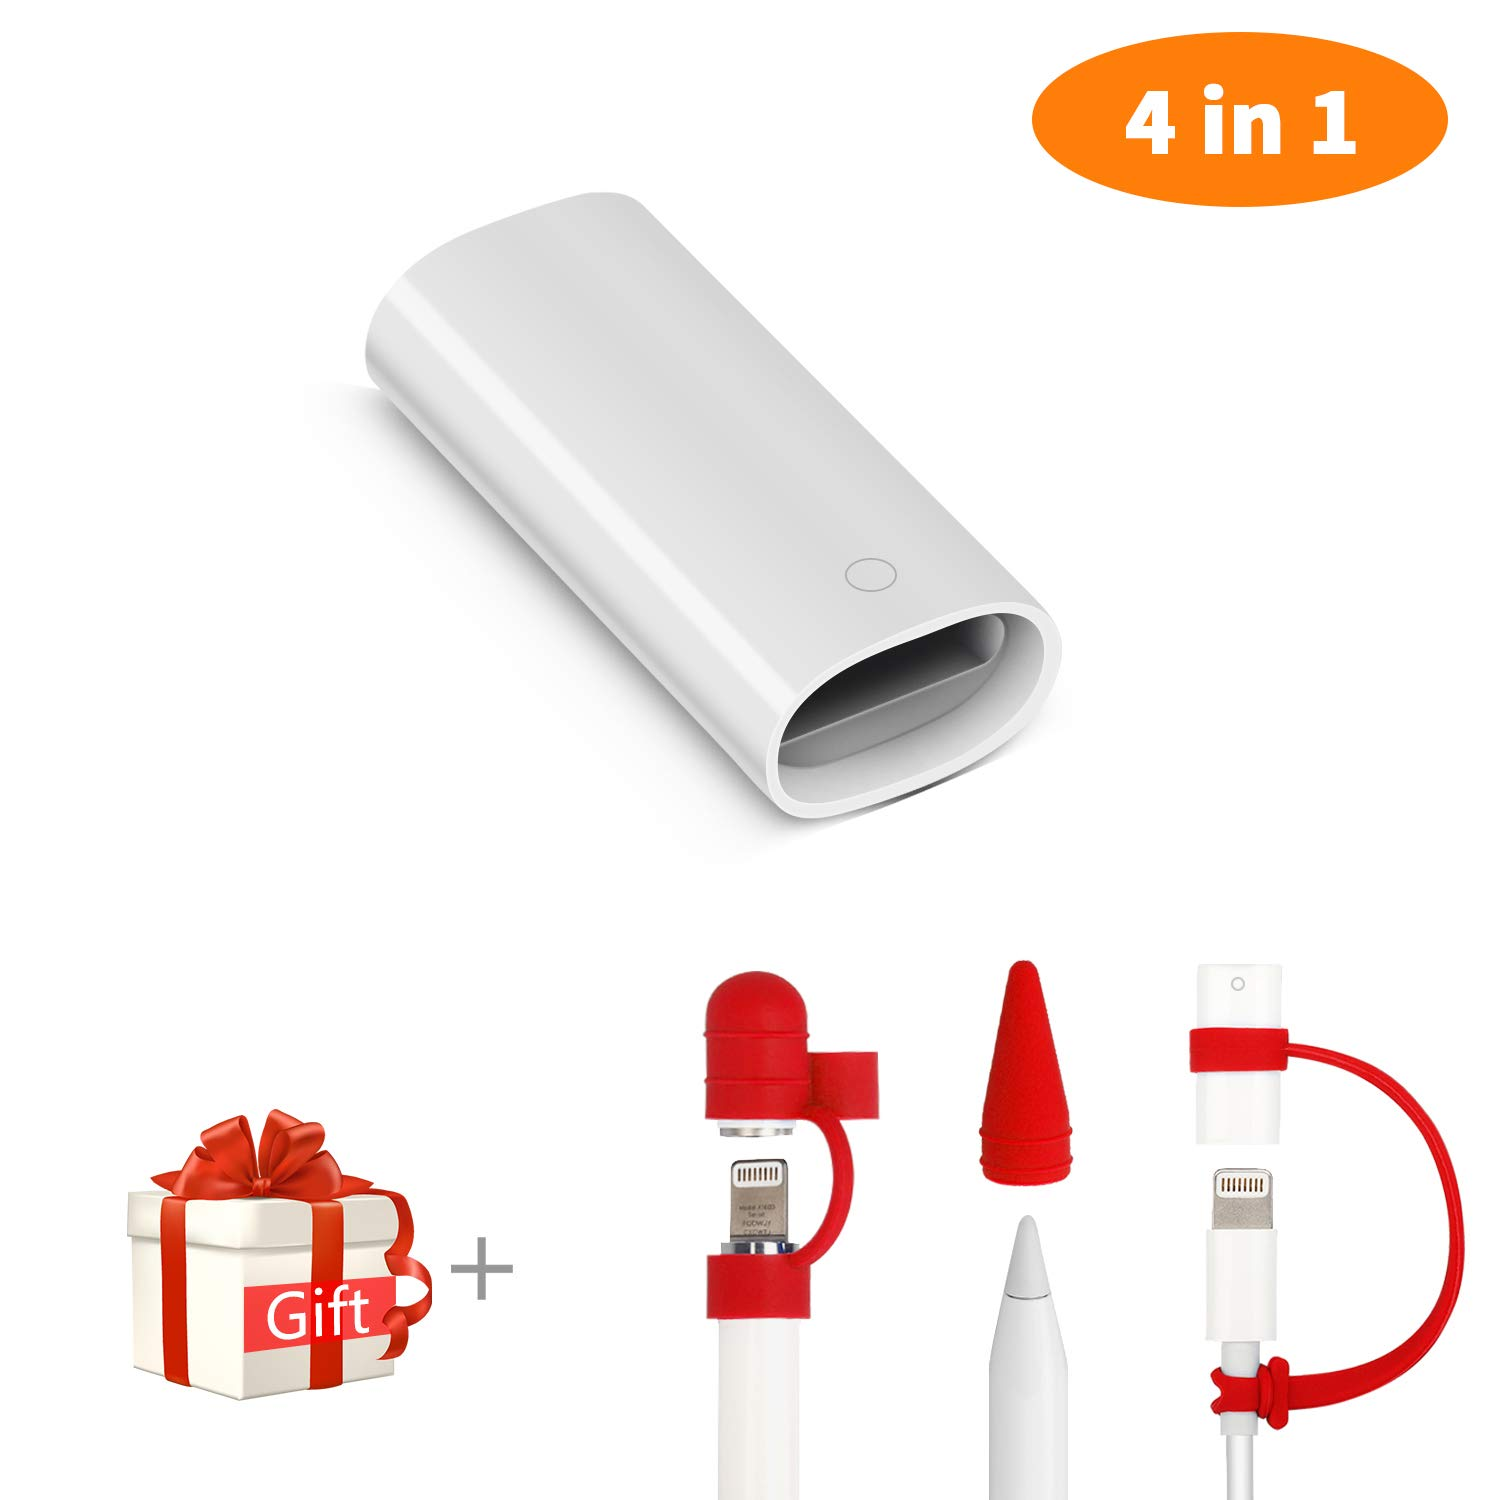 Cuauco Adapter Compatible With Apple Pencil and iPad Pro Cable Charging Adapter Connector + [3-Piece] Apple Pencil Cap Holder / Nib Cover / Cable Adapter Tether Compatible With iPad Pro / iPad 2018 Pencil ( 4 in 1, White)